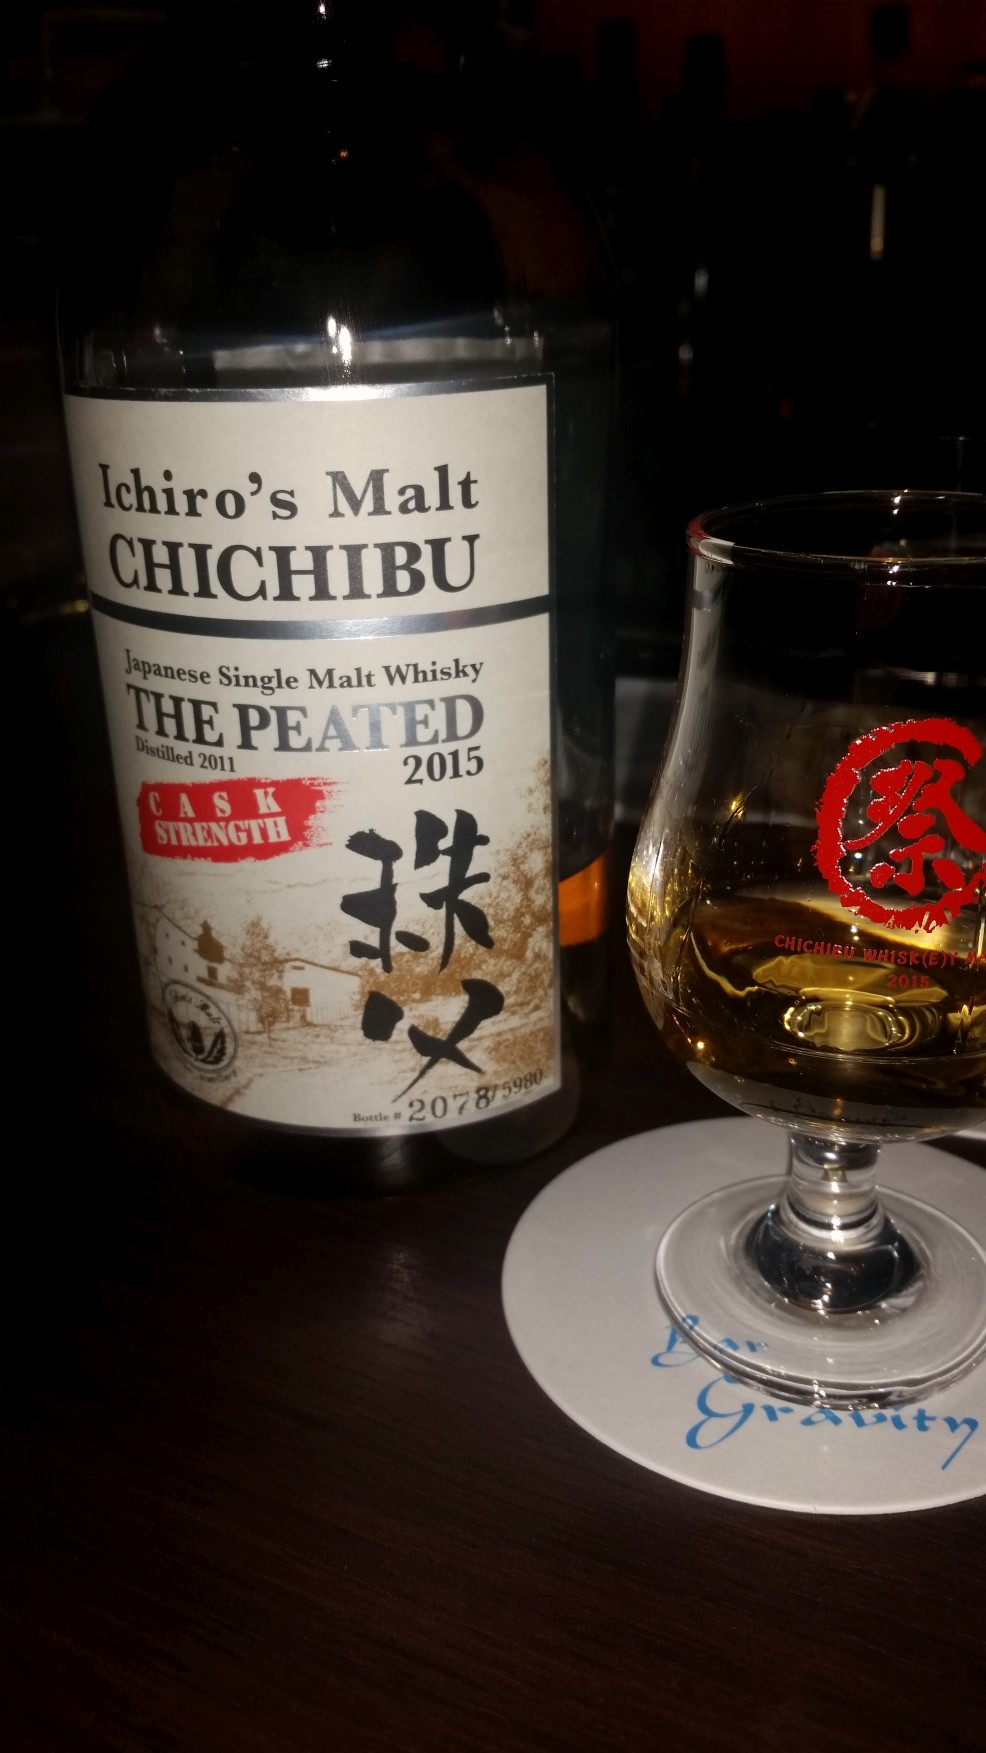 Ichiro's Malt Chichibu The Peated Cask Strength 2015 Whisky Review